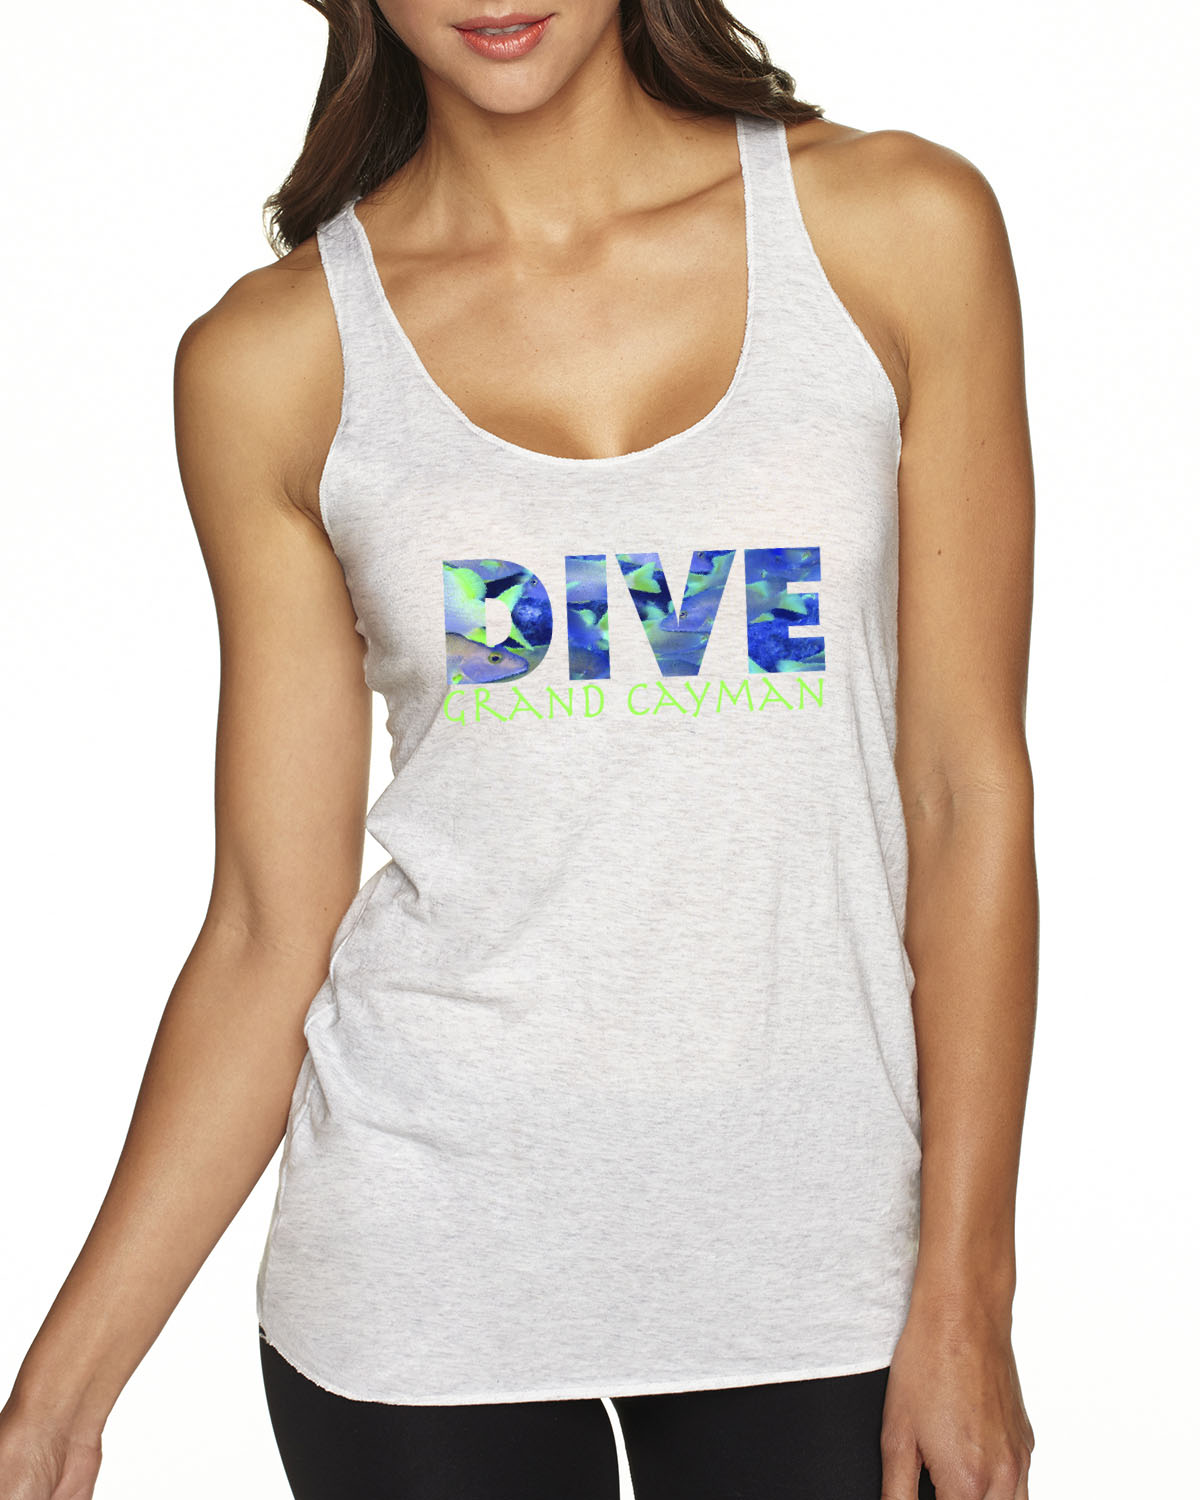 Women's Tri-blend racer-back DIVE scuba diving tank top (Heather White)